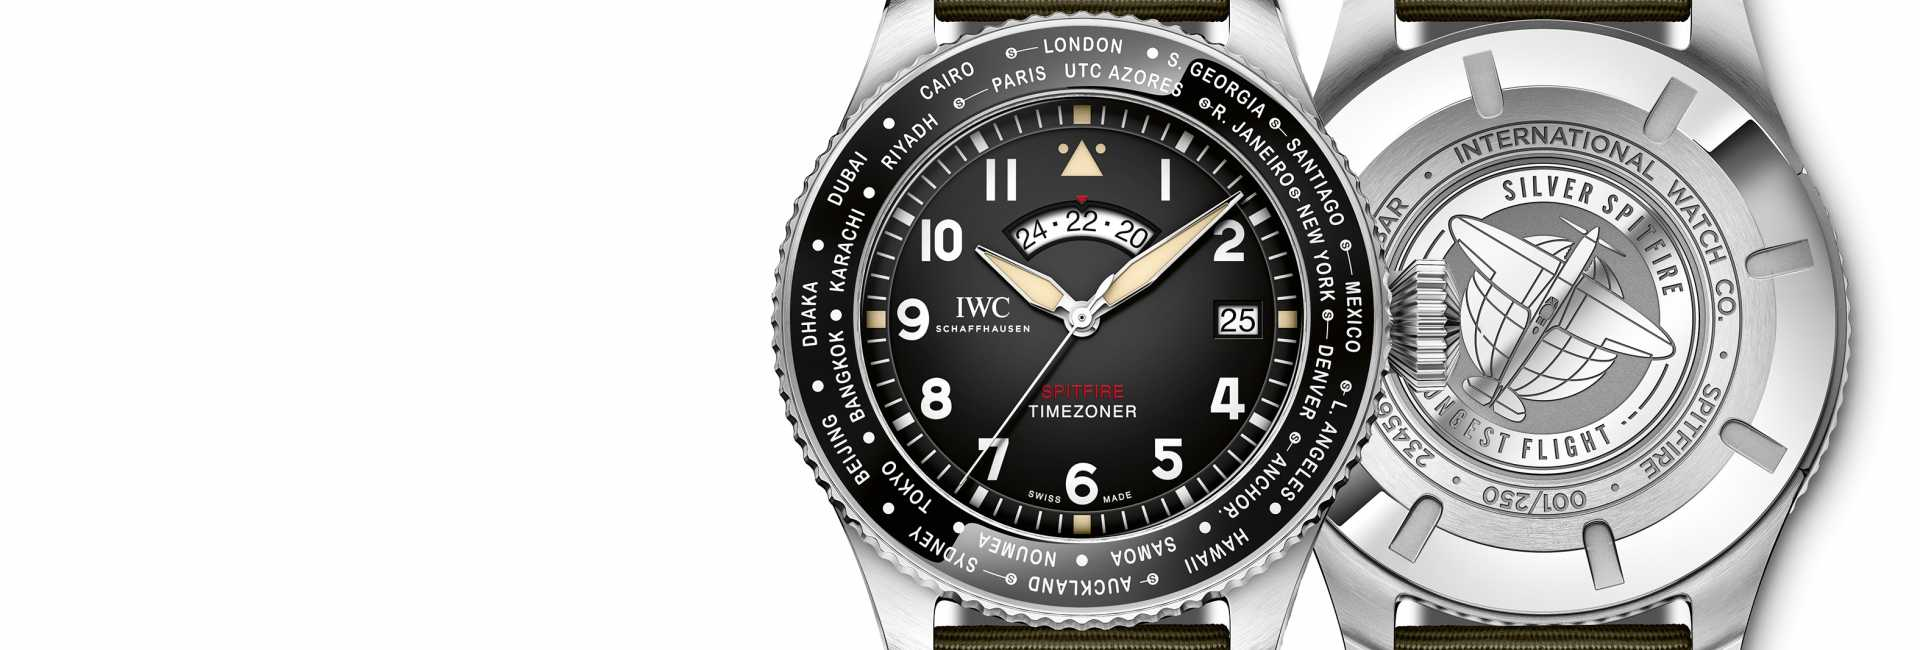 "IWC - ""The longest Flight"""